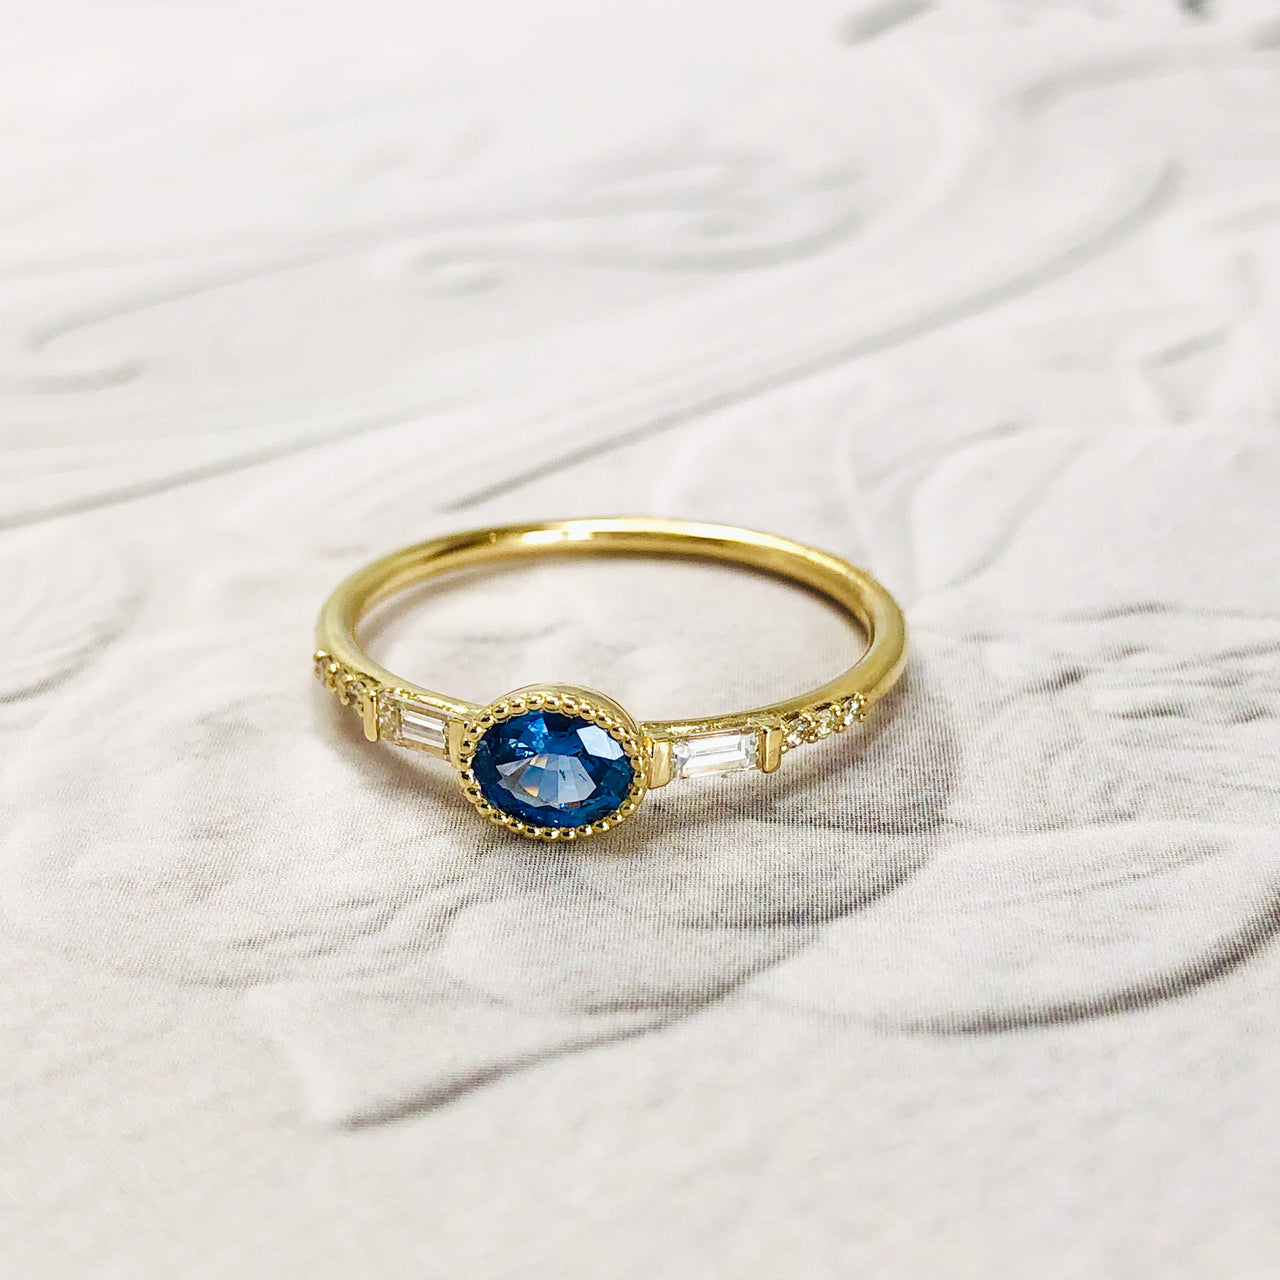 14K Yellow Gold Sapphire & Diamond Ring.